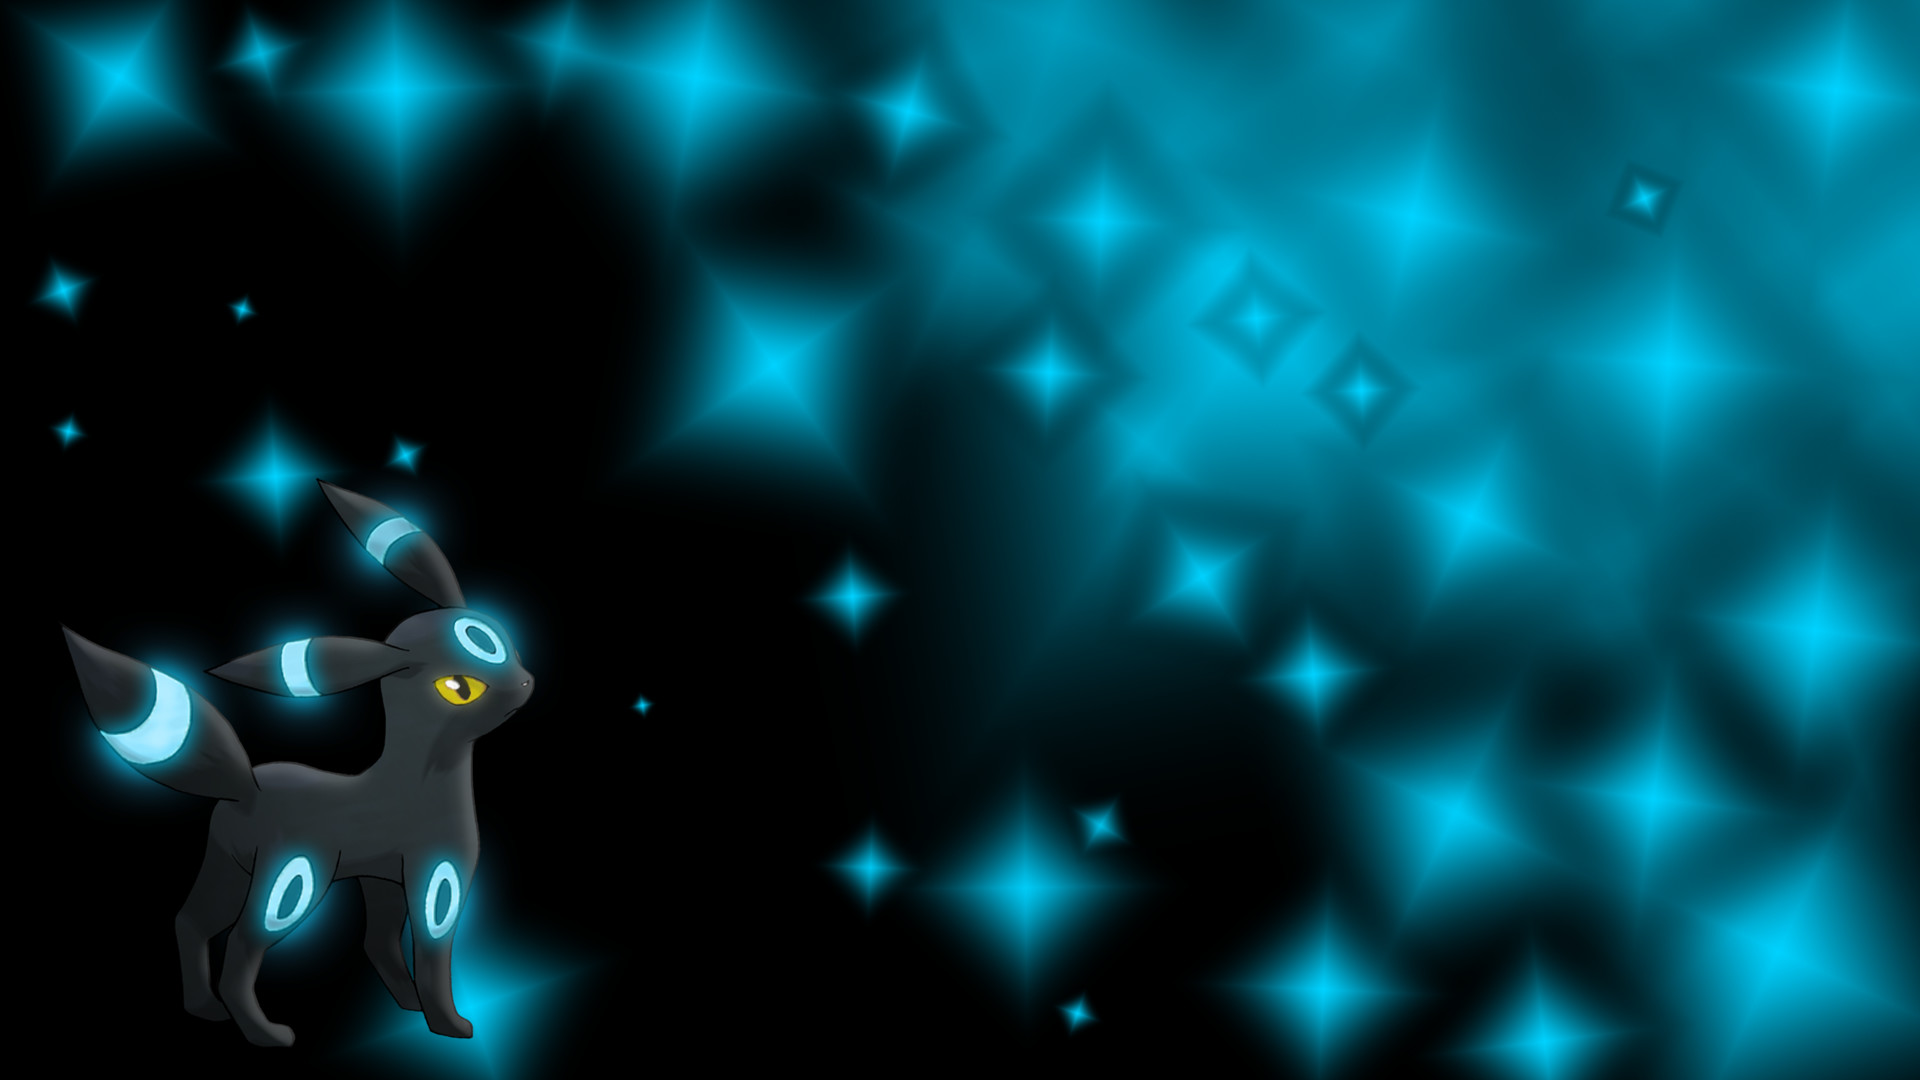 1920x1080 Umbreon Wallpaper by Trikk117 Umbreon Wallpaper by Trikk117